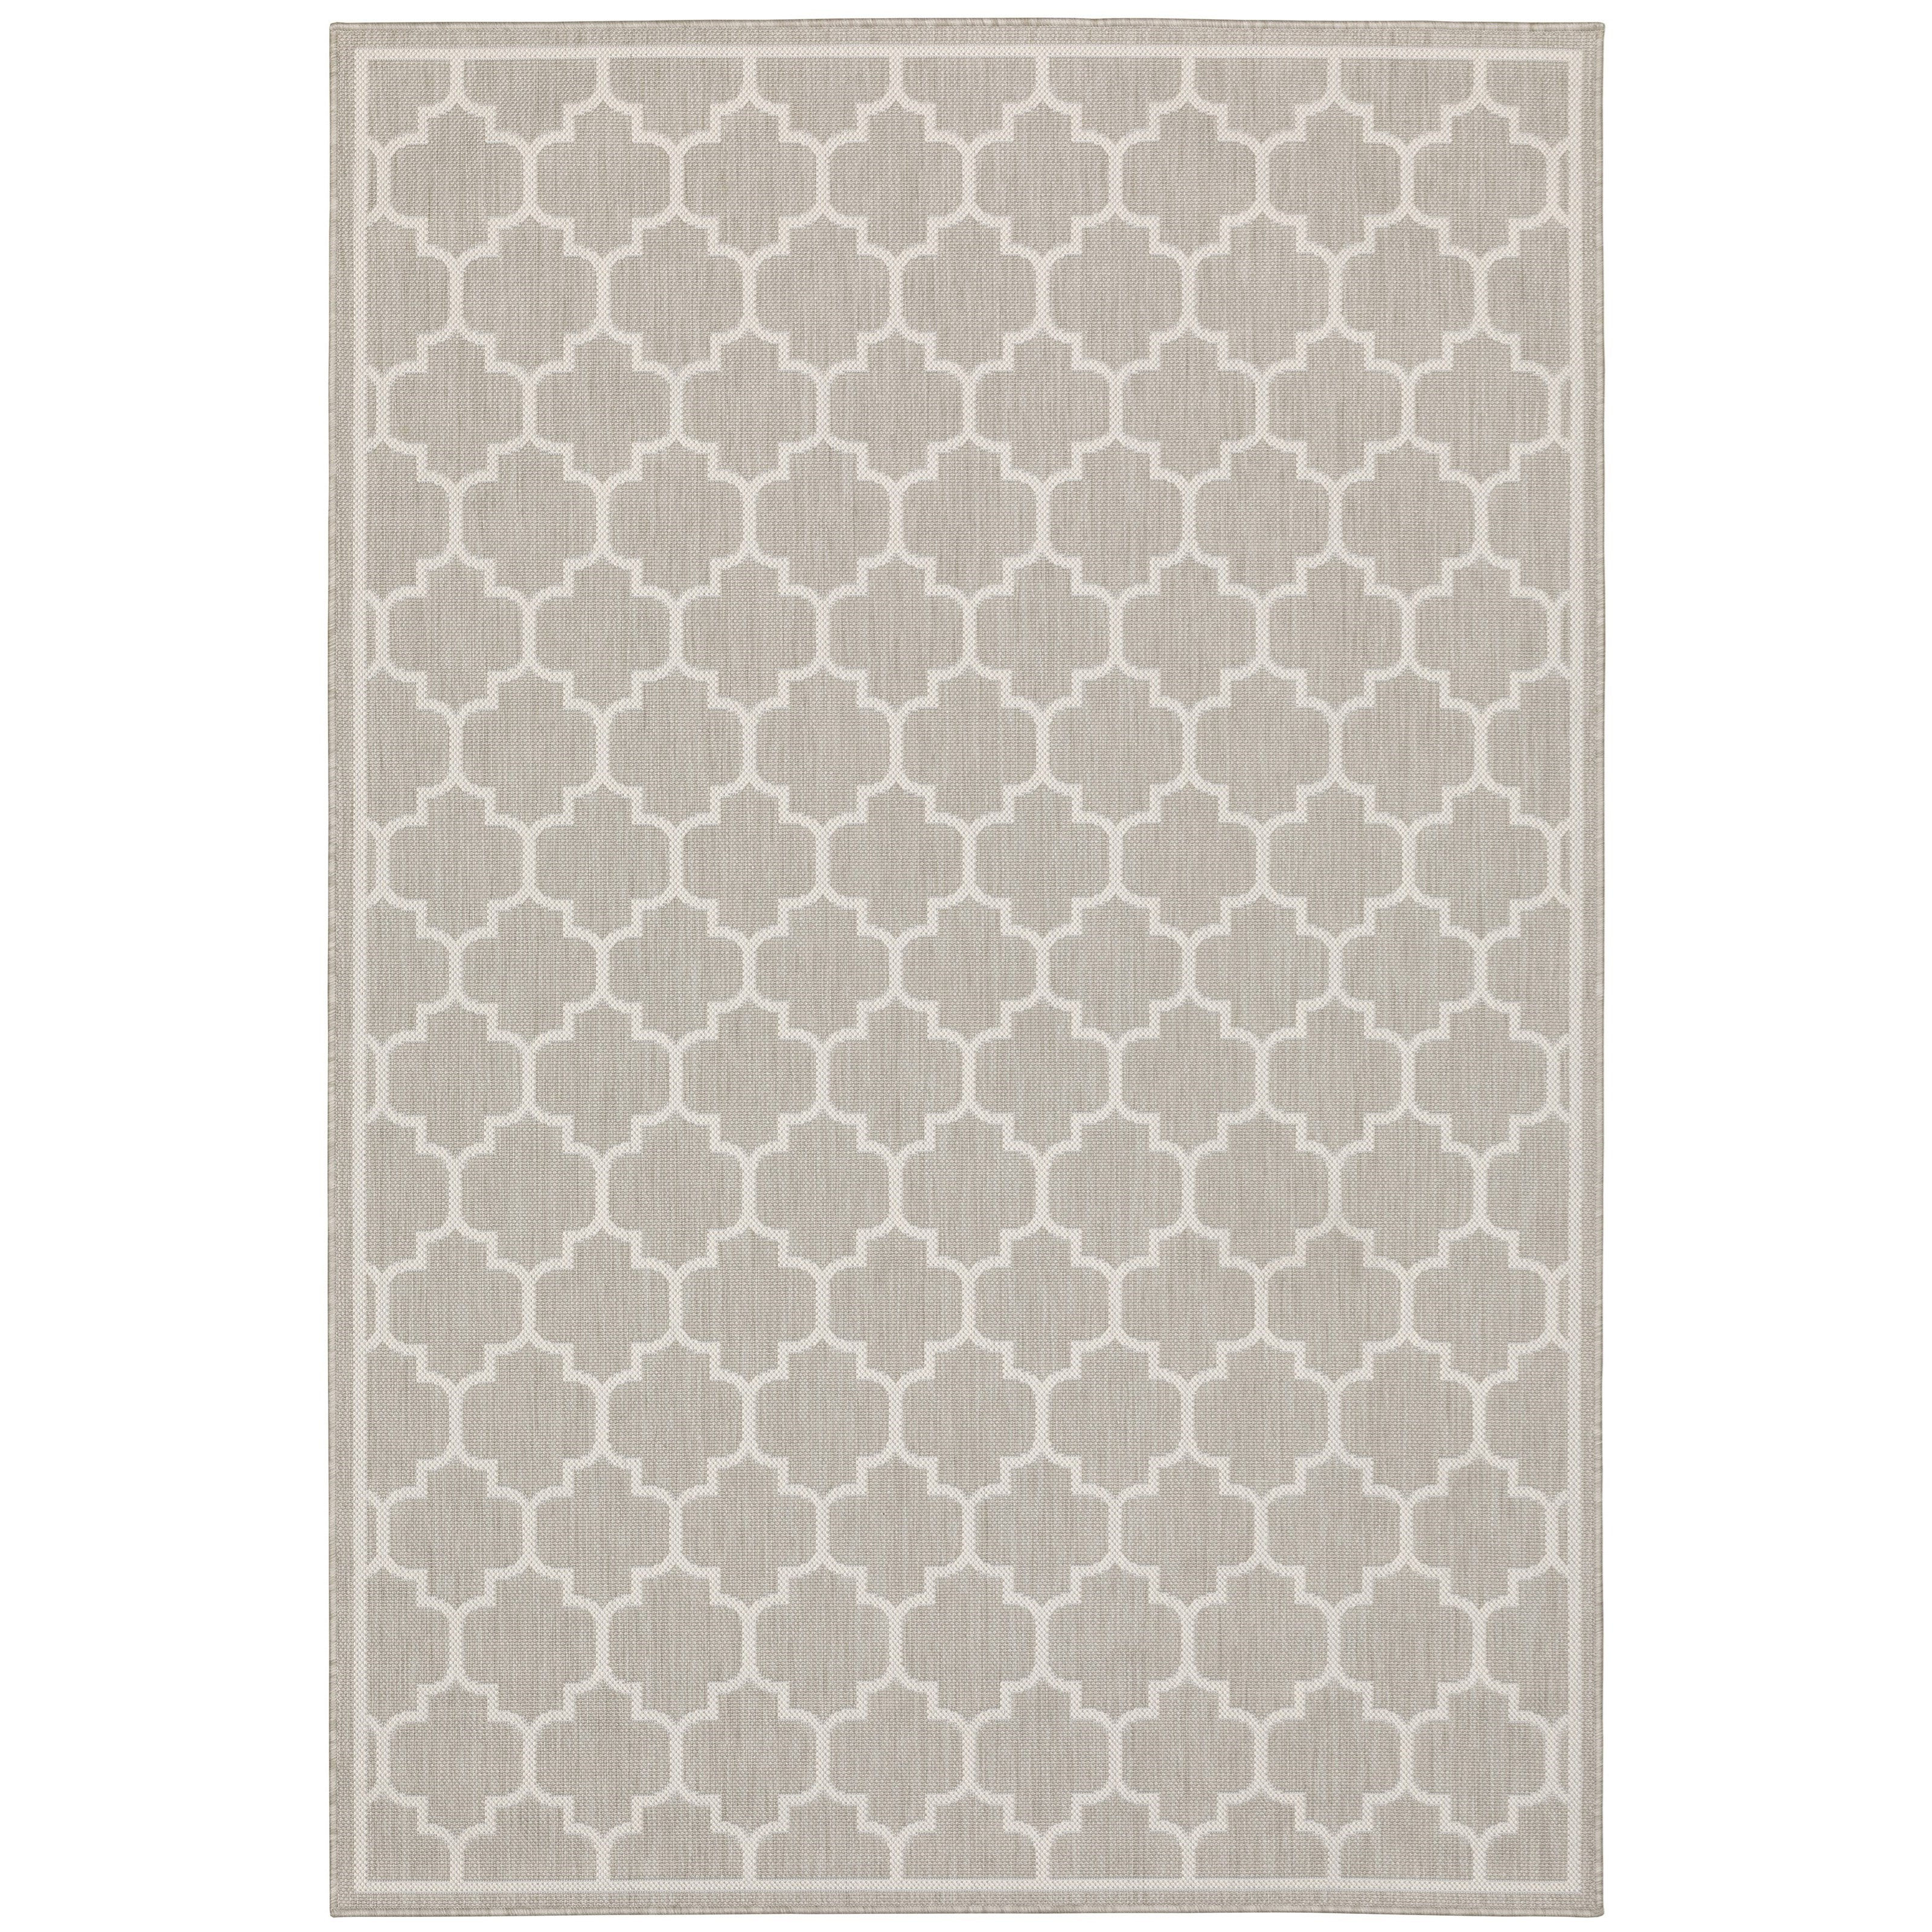 "Portofino 9'10"" X 12'10"" Rectangle Rug by Oriental Weavers at Steger's Furniture"